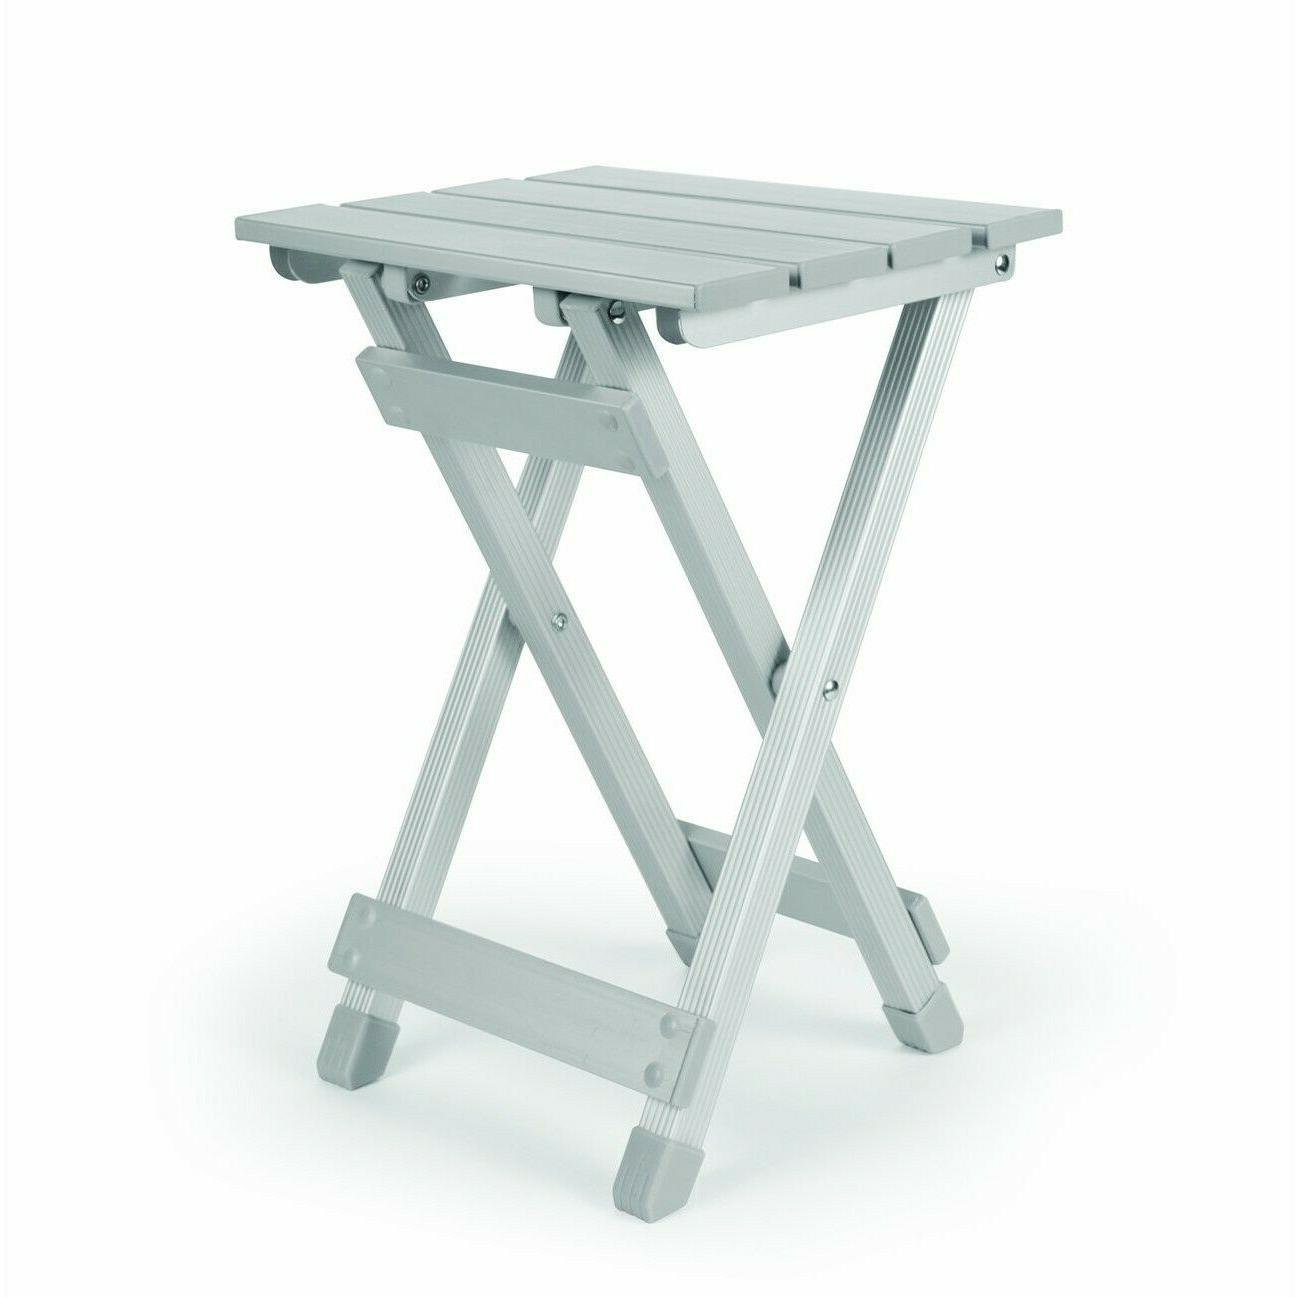 Side Tables For Small Spaces Kitchen Folding Outdoor Fold-Aw